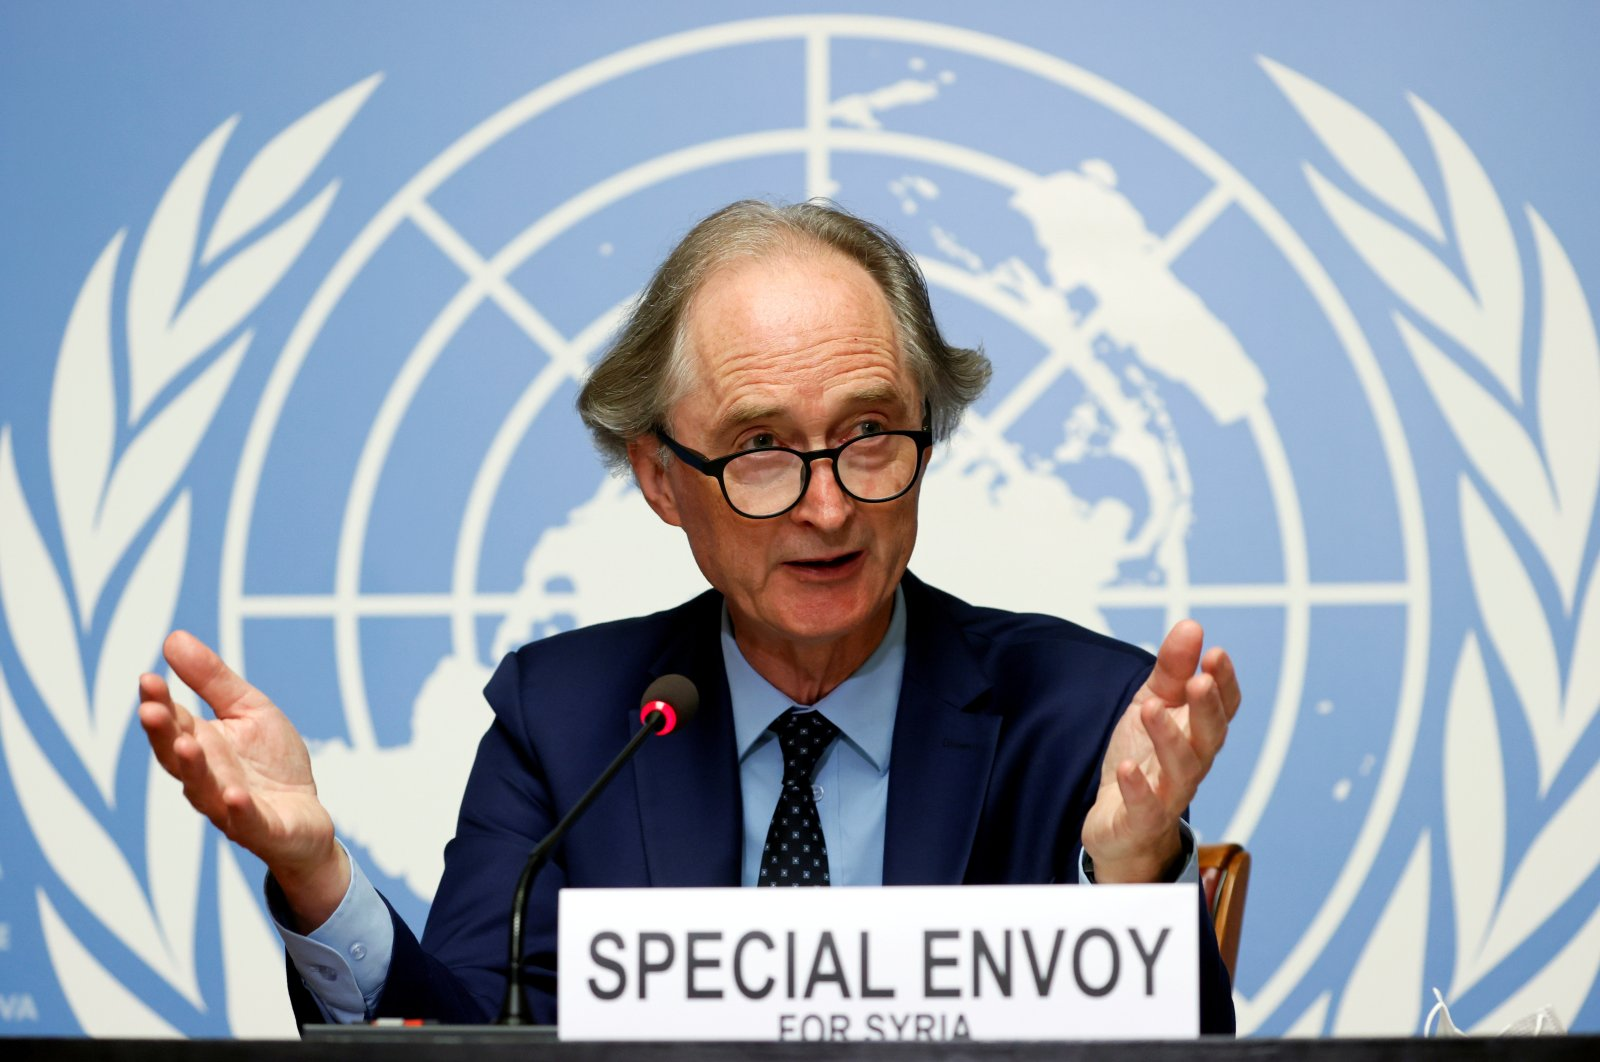 U.N. Special Envoy for Syria Geir Pedersen gestures during a news conference ahead of a meeting of the Syrian Constitutional Committee at the United Nations in Geneva, Aug. 21, 2020. (REUTERS)